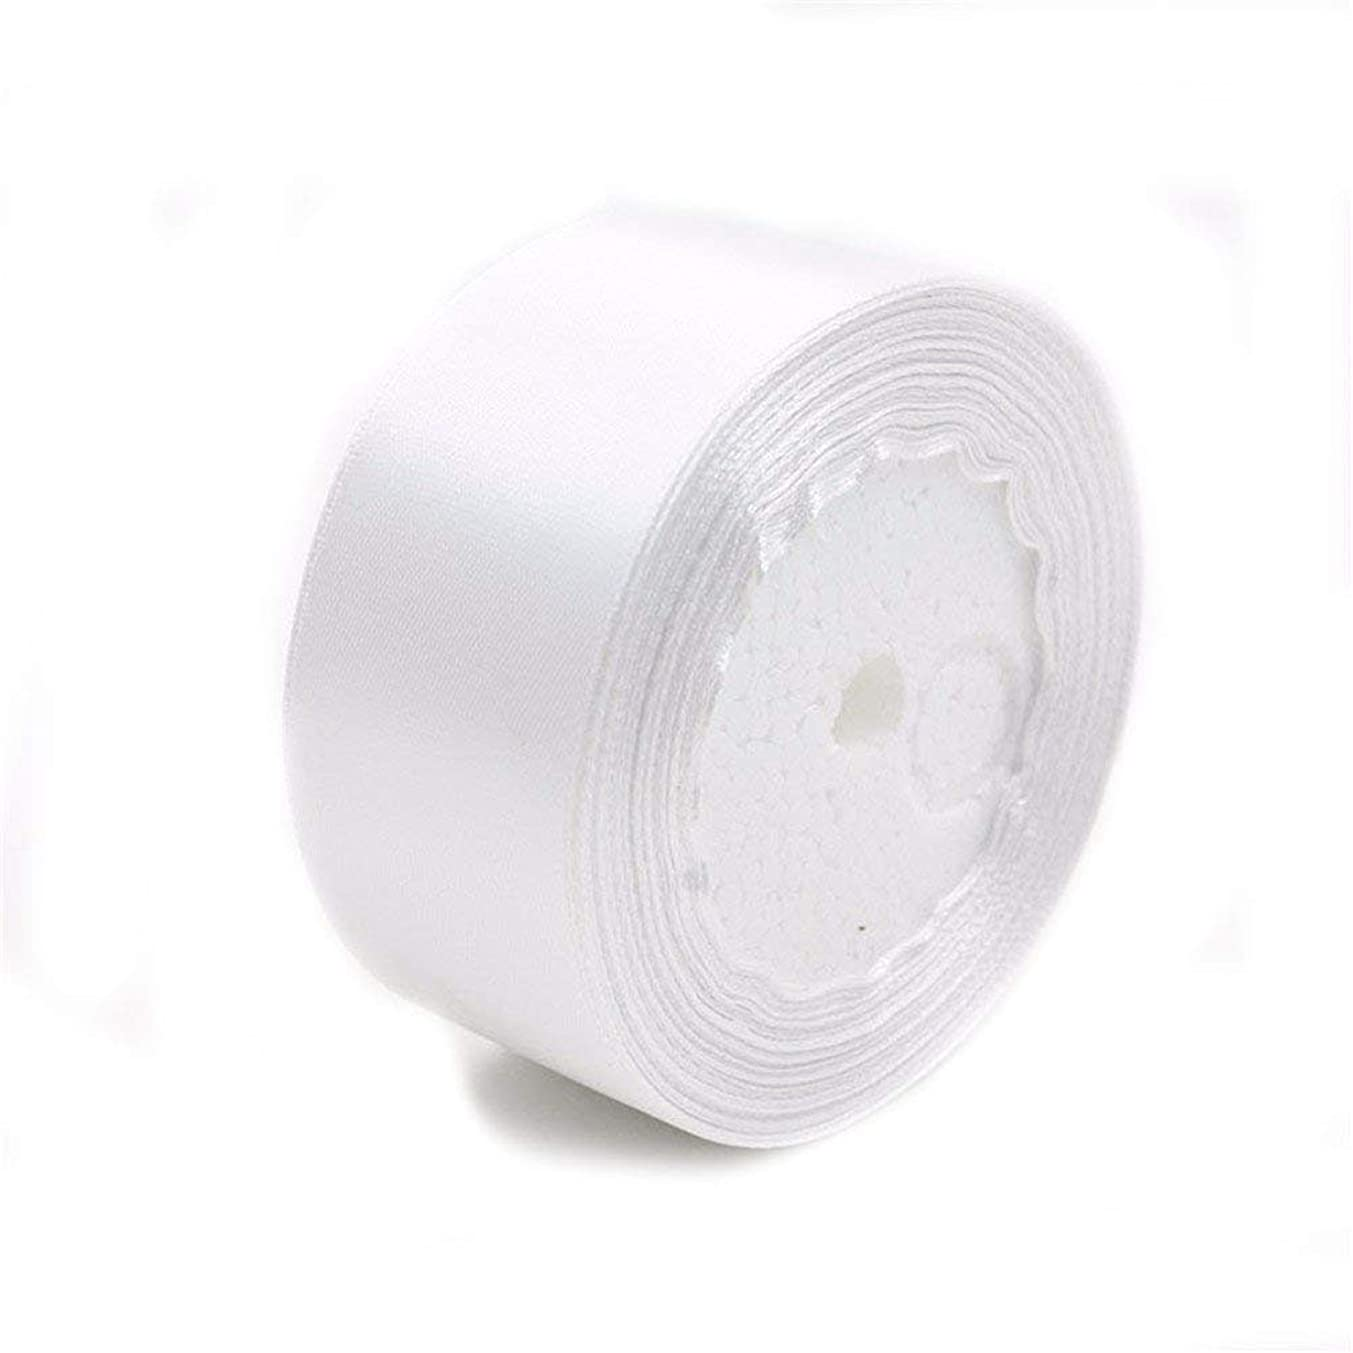 AKOAK 2 inches 25 Yards White Satin Ribbon Perfect for Wedding, Gift Wrapping